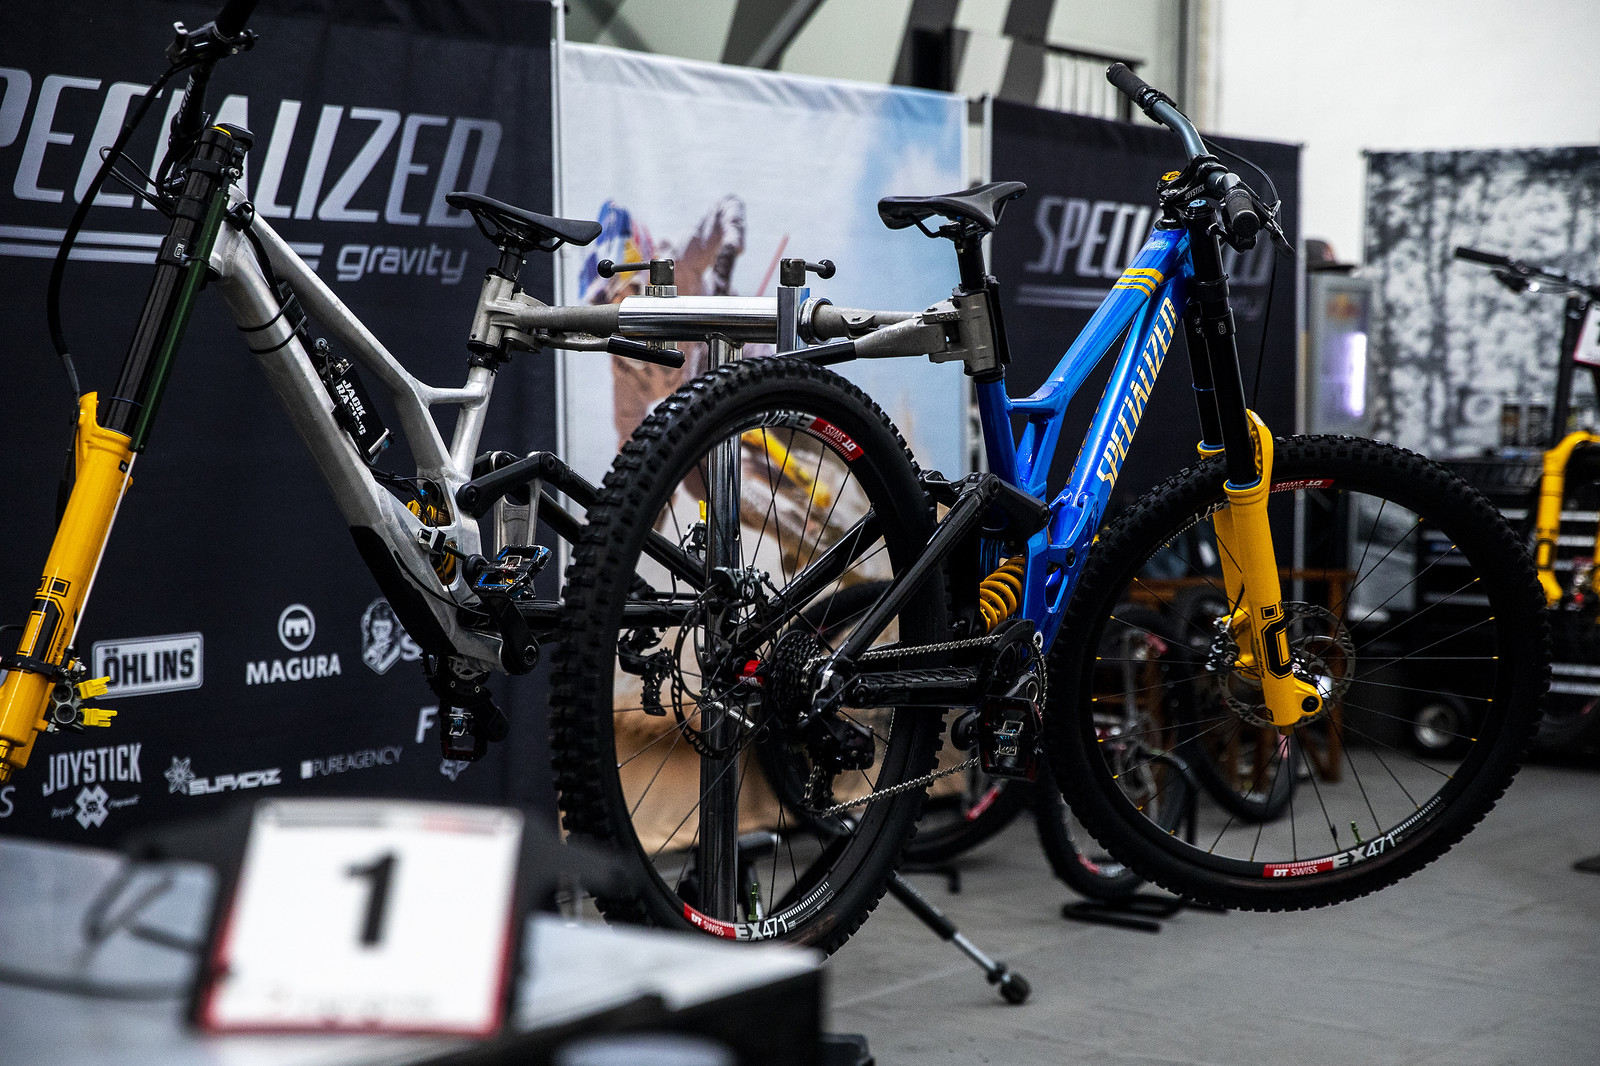 New Colors for Loic Bruni - PIT BITS - 2019 Lenzerheide World Cup Downhill - Mountain Biking Pictures - Vital MTB